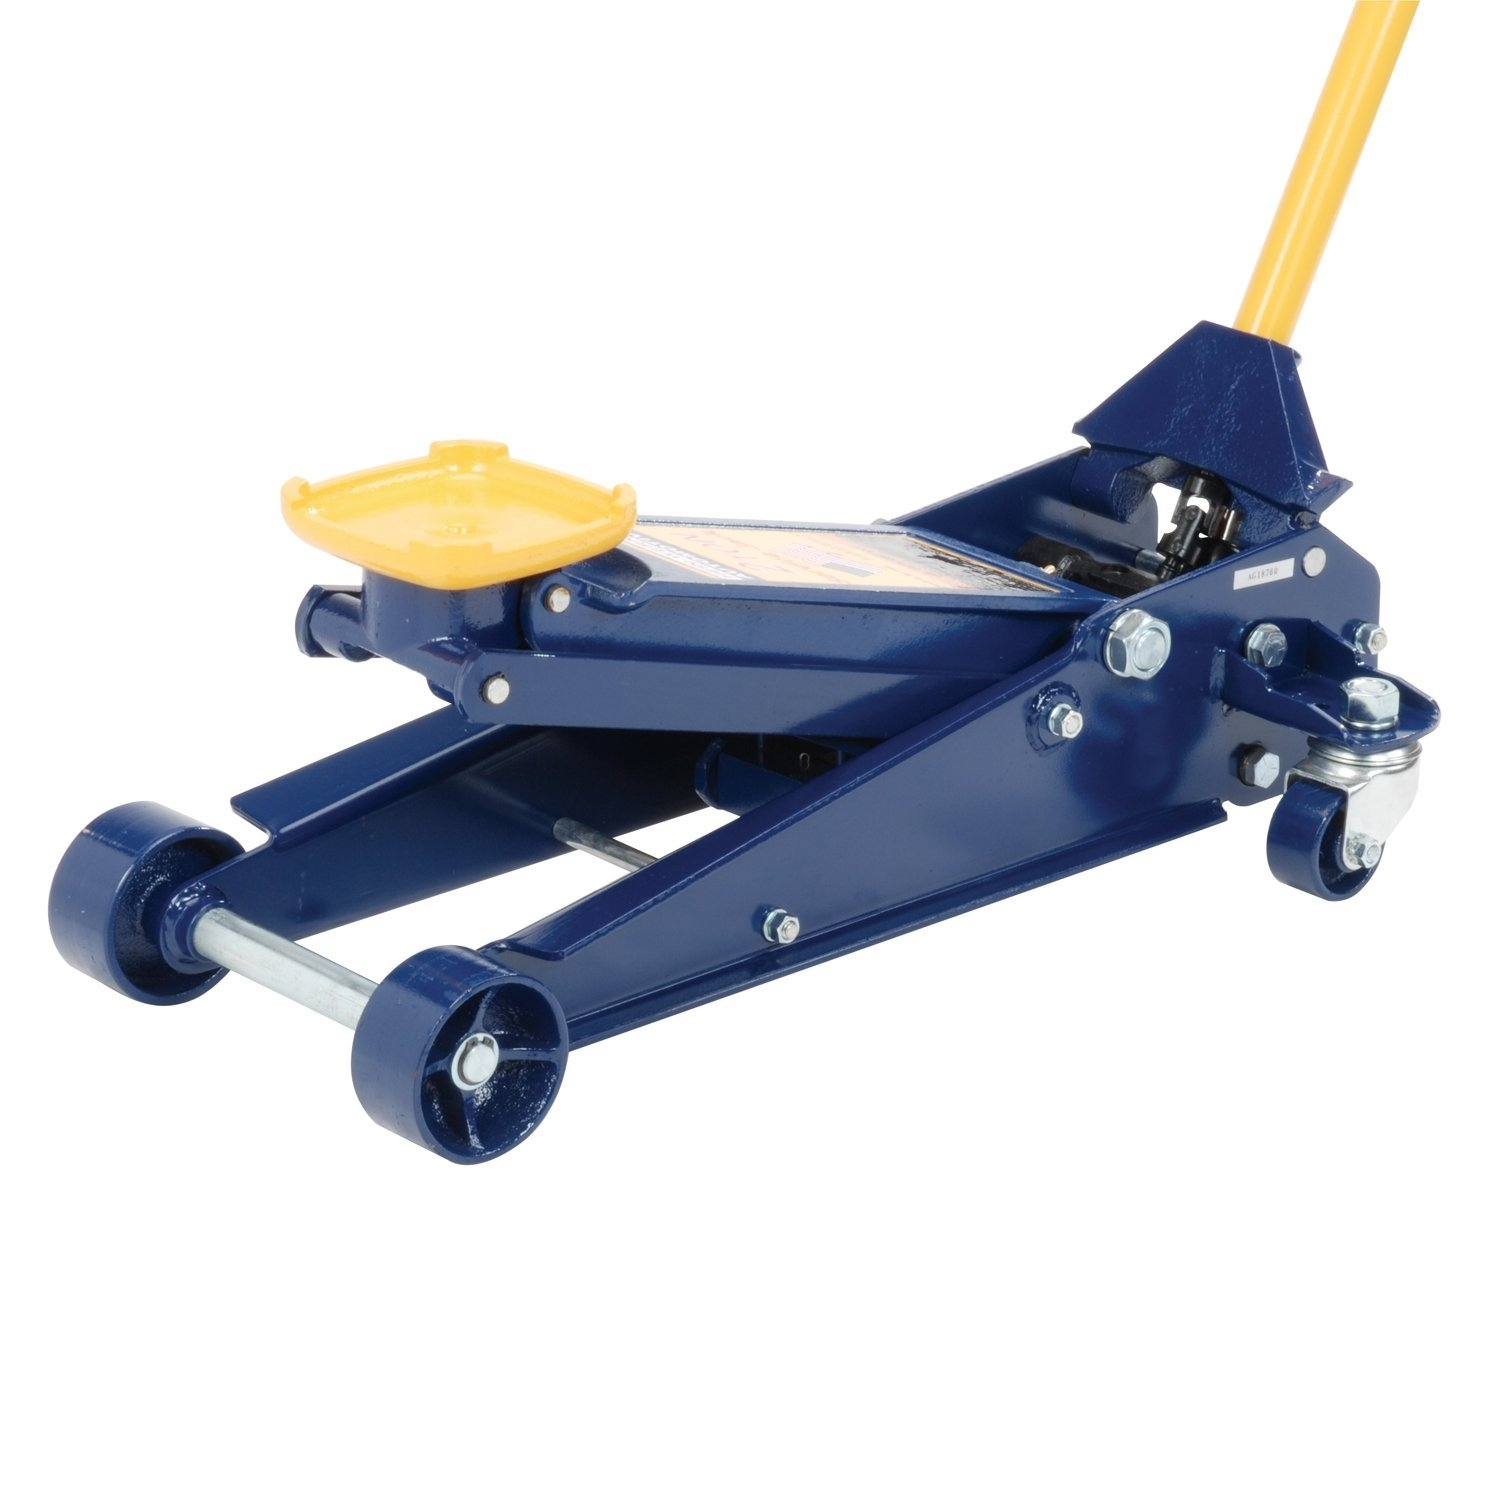 Flooring : Hein Werner Floor Jack Parts Diagram Ws Model K regarding Hein Werner Floor Jack Parts Diagram